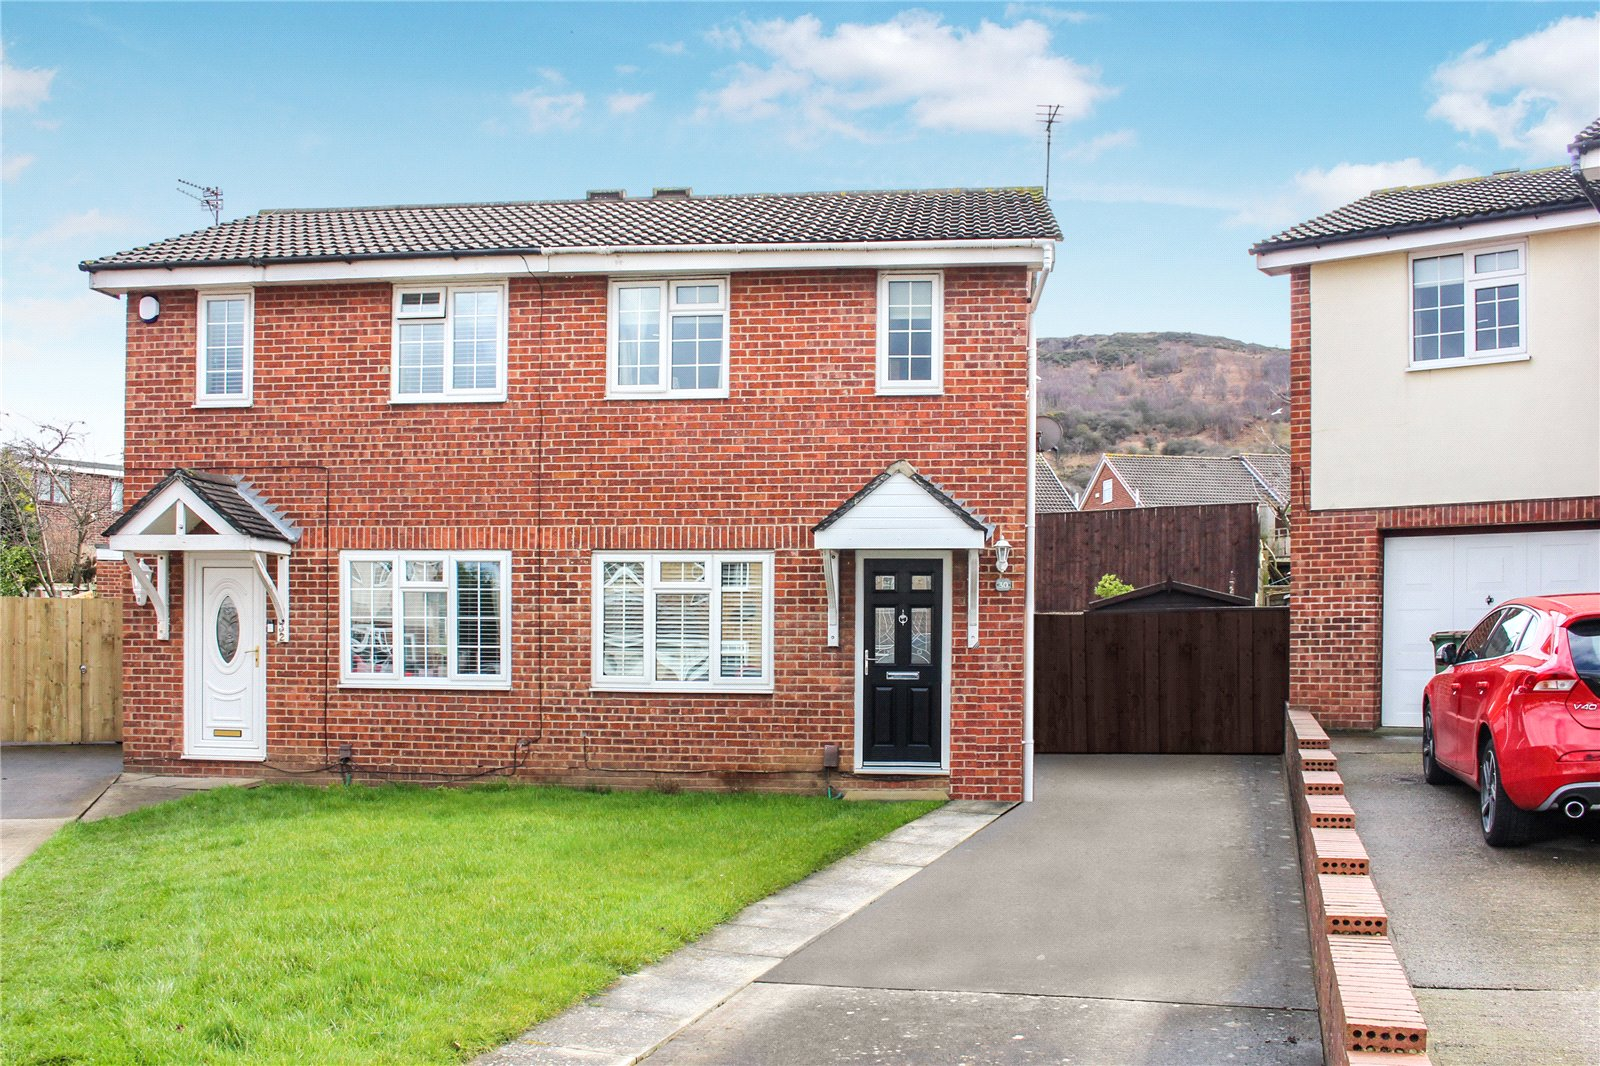 2 bed house for sale in Ashbourne Close, Eston  - Property Image 1